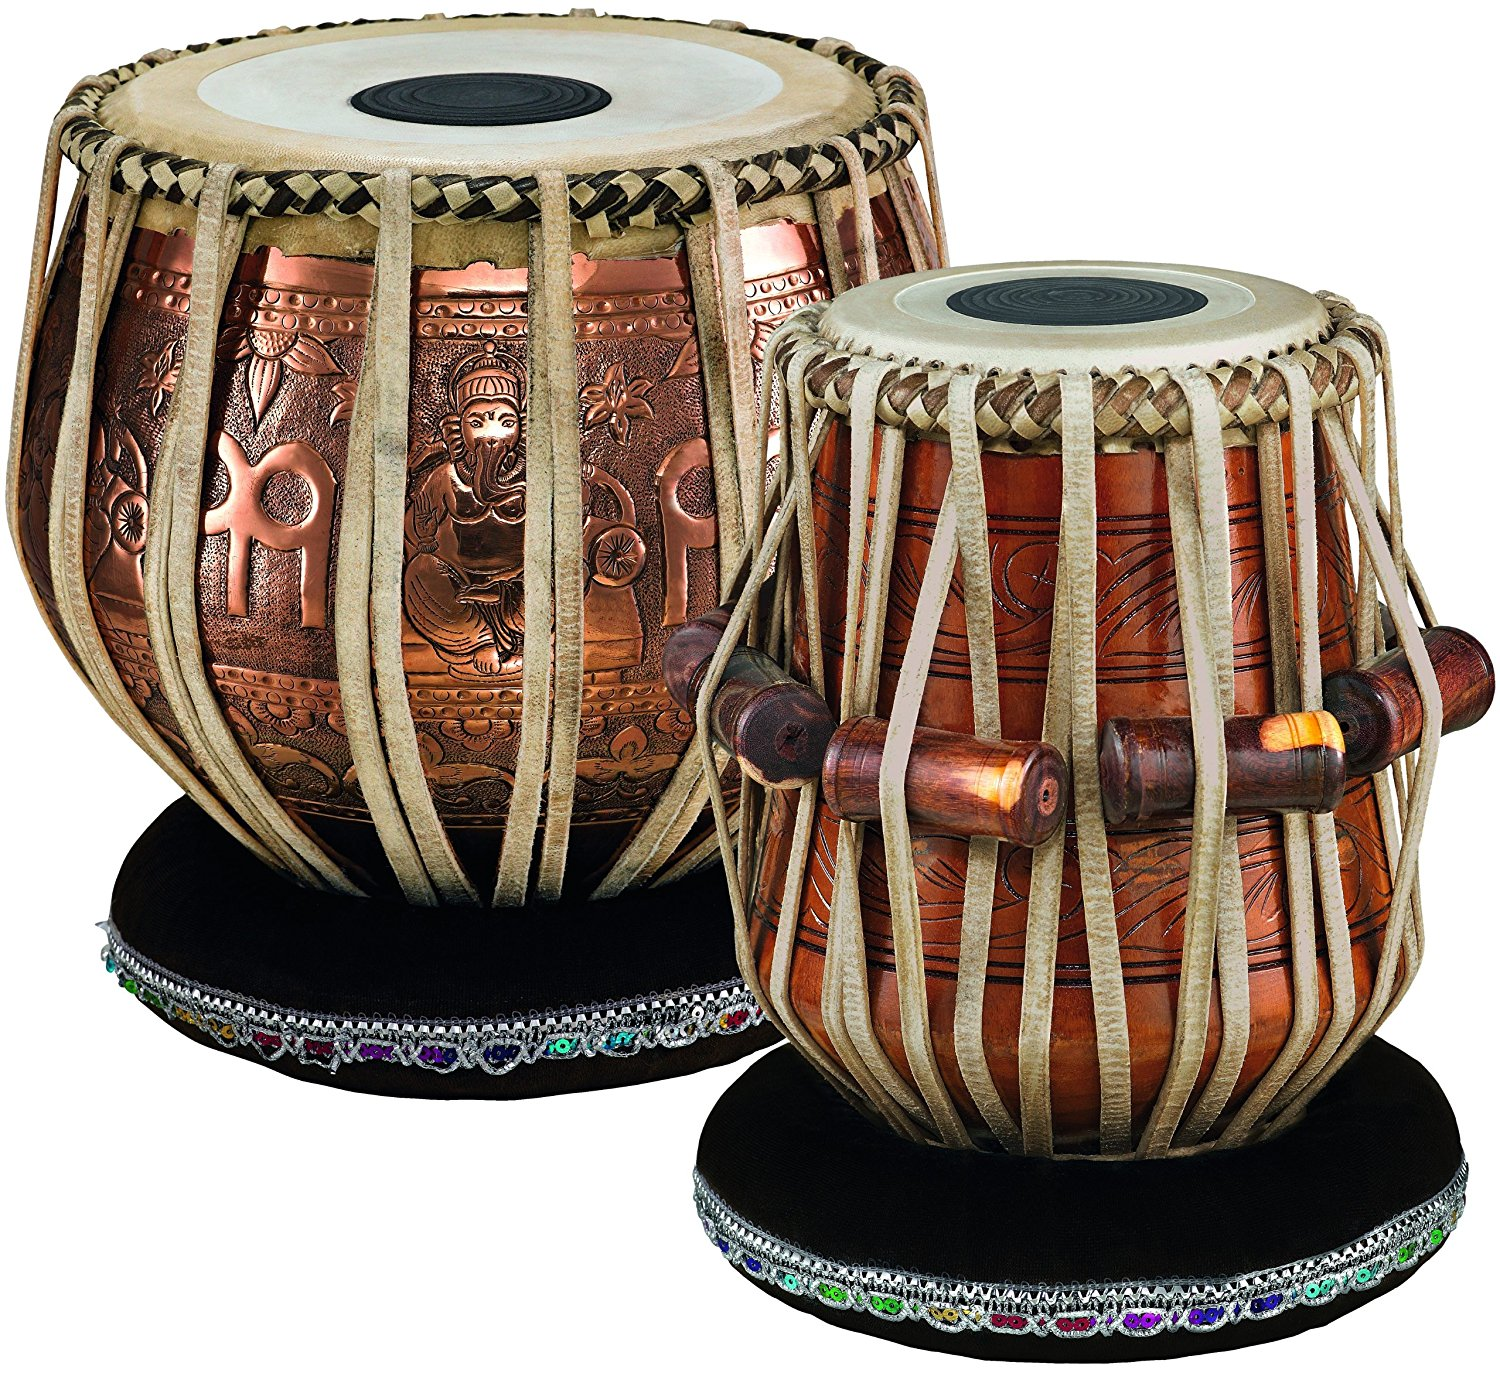 Meinl 9 Inch Bayan And 5 1/2 Inch Dayan Professional Tabla Set:  Amazon.co.uk: Musical Instruments - Tabla HD PNG